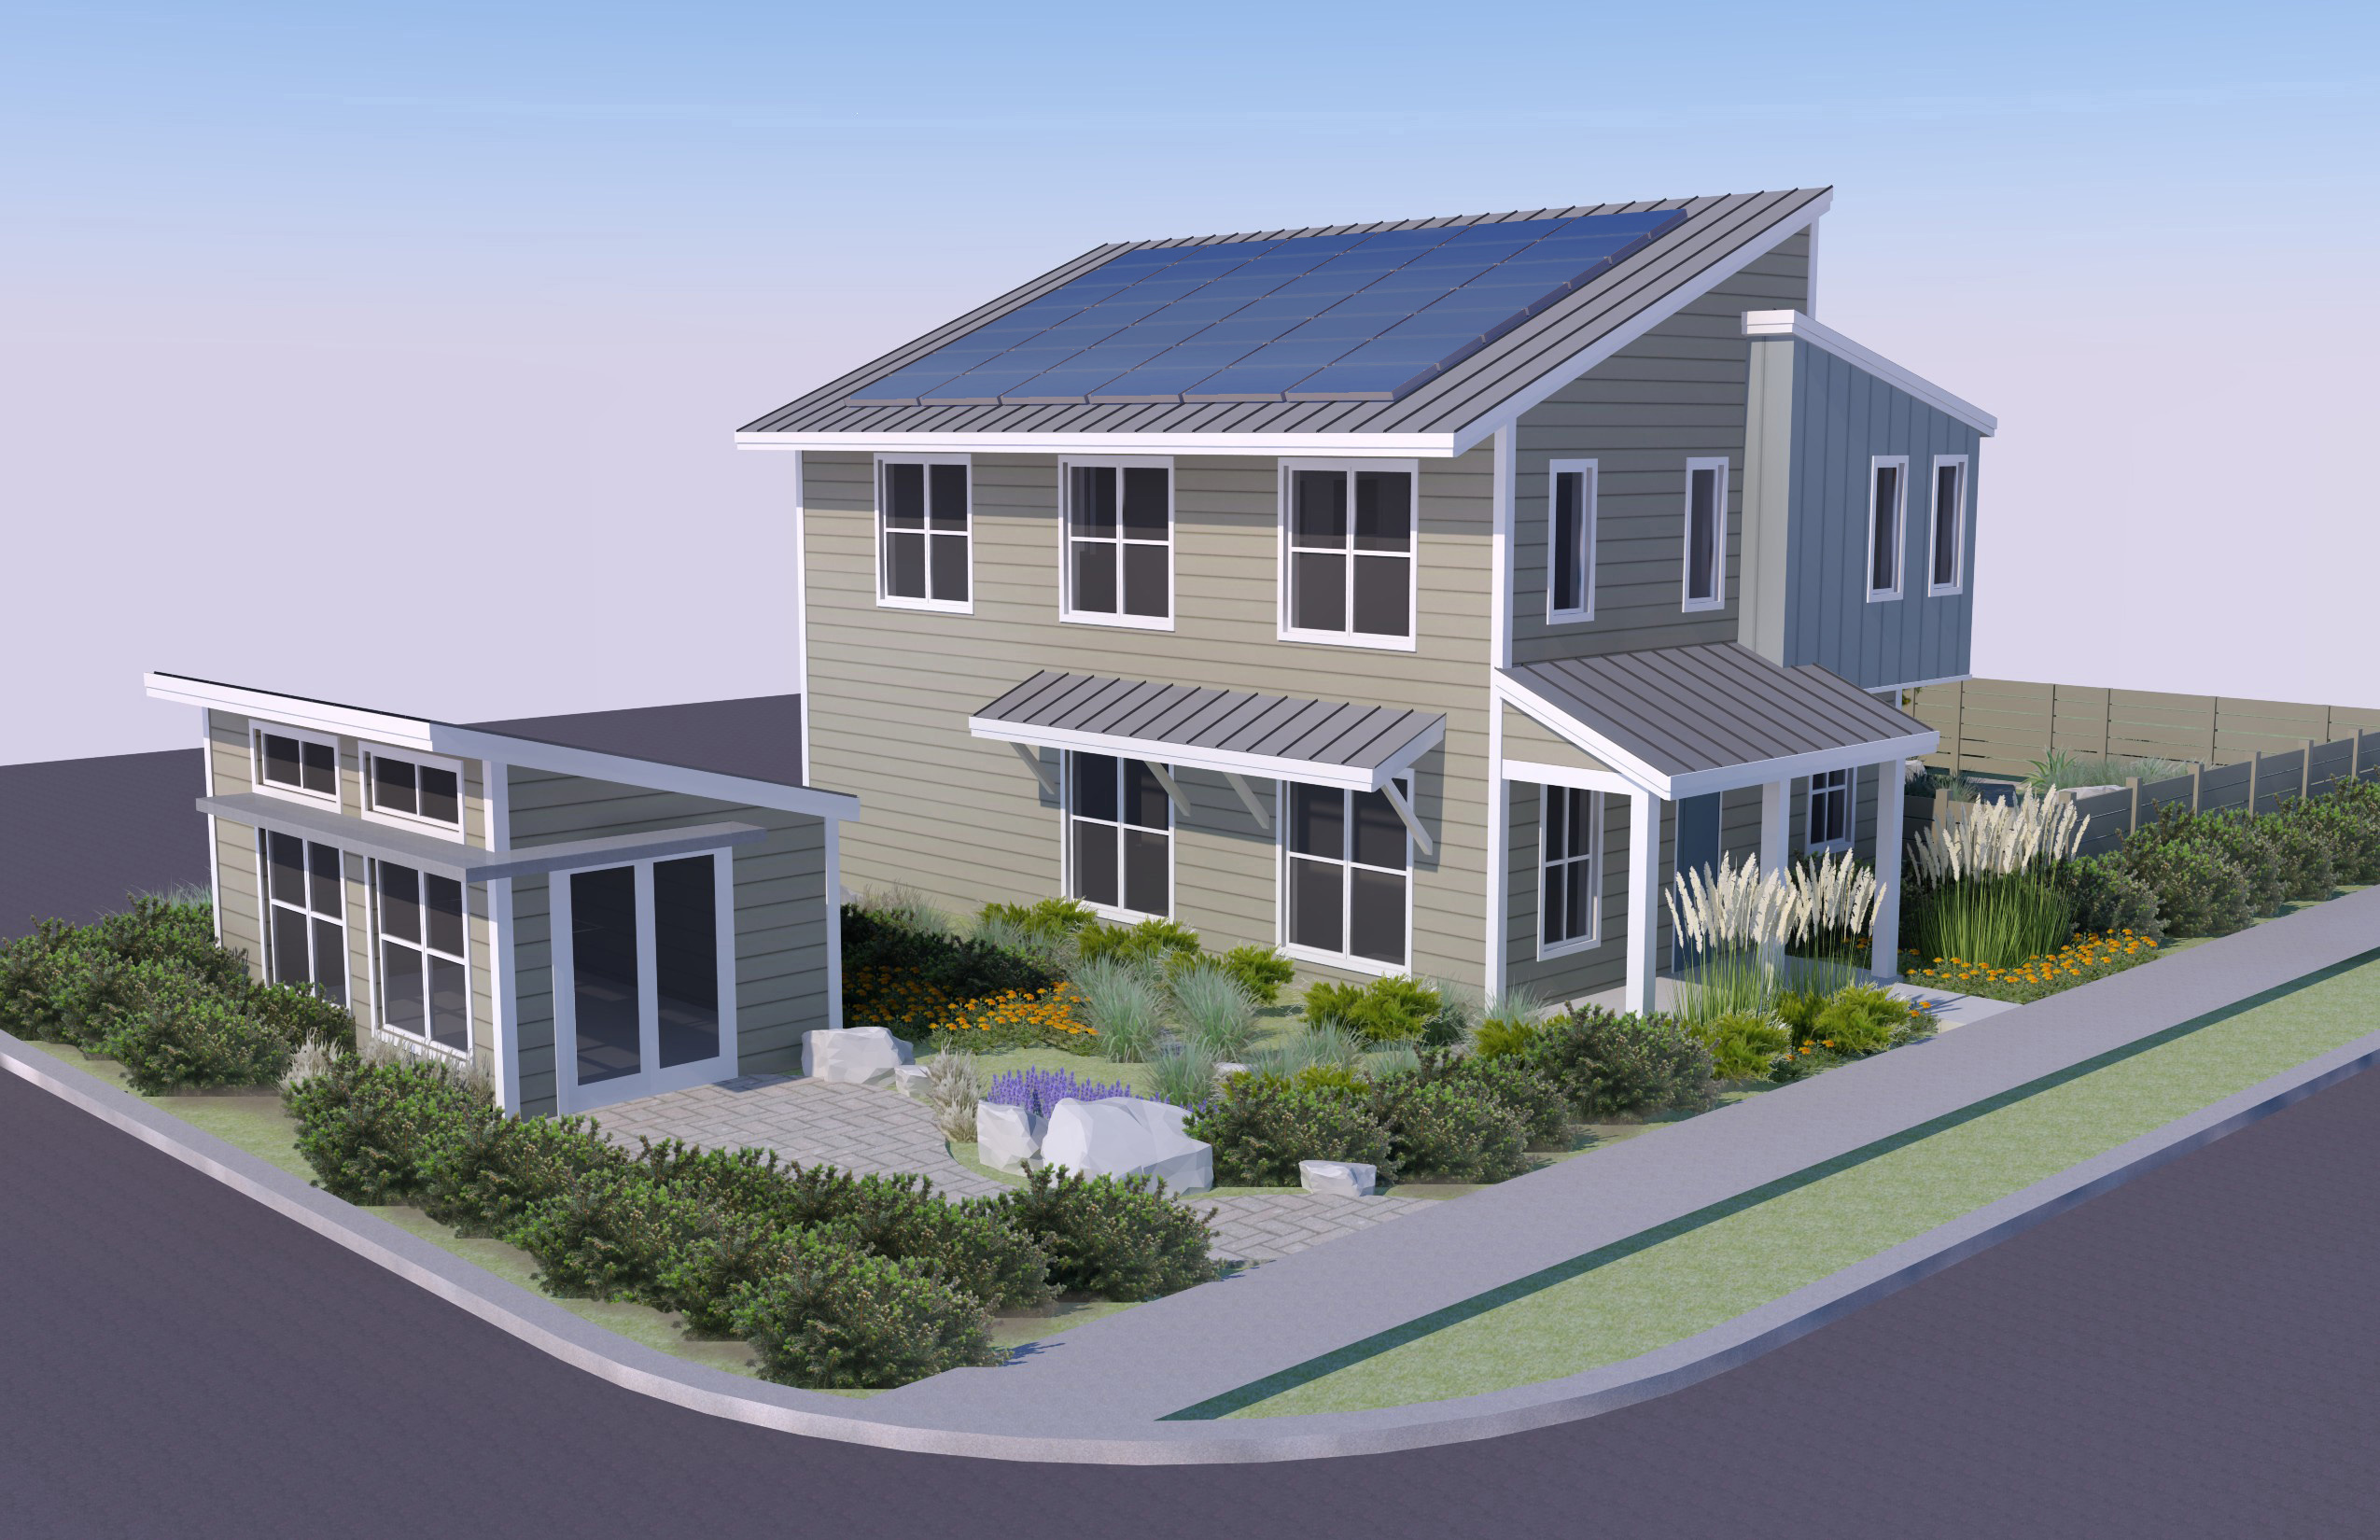 A rendering of the Honda Smart Home US, a showcase for environmental innovation and renewable energy enabling technologies that demonstrates Honda's vision for sustainable, zero-carbon living and personal mobility. (Graphic: Business Wire)